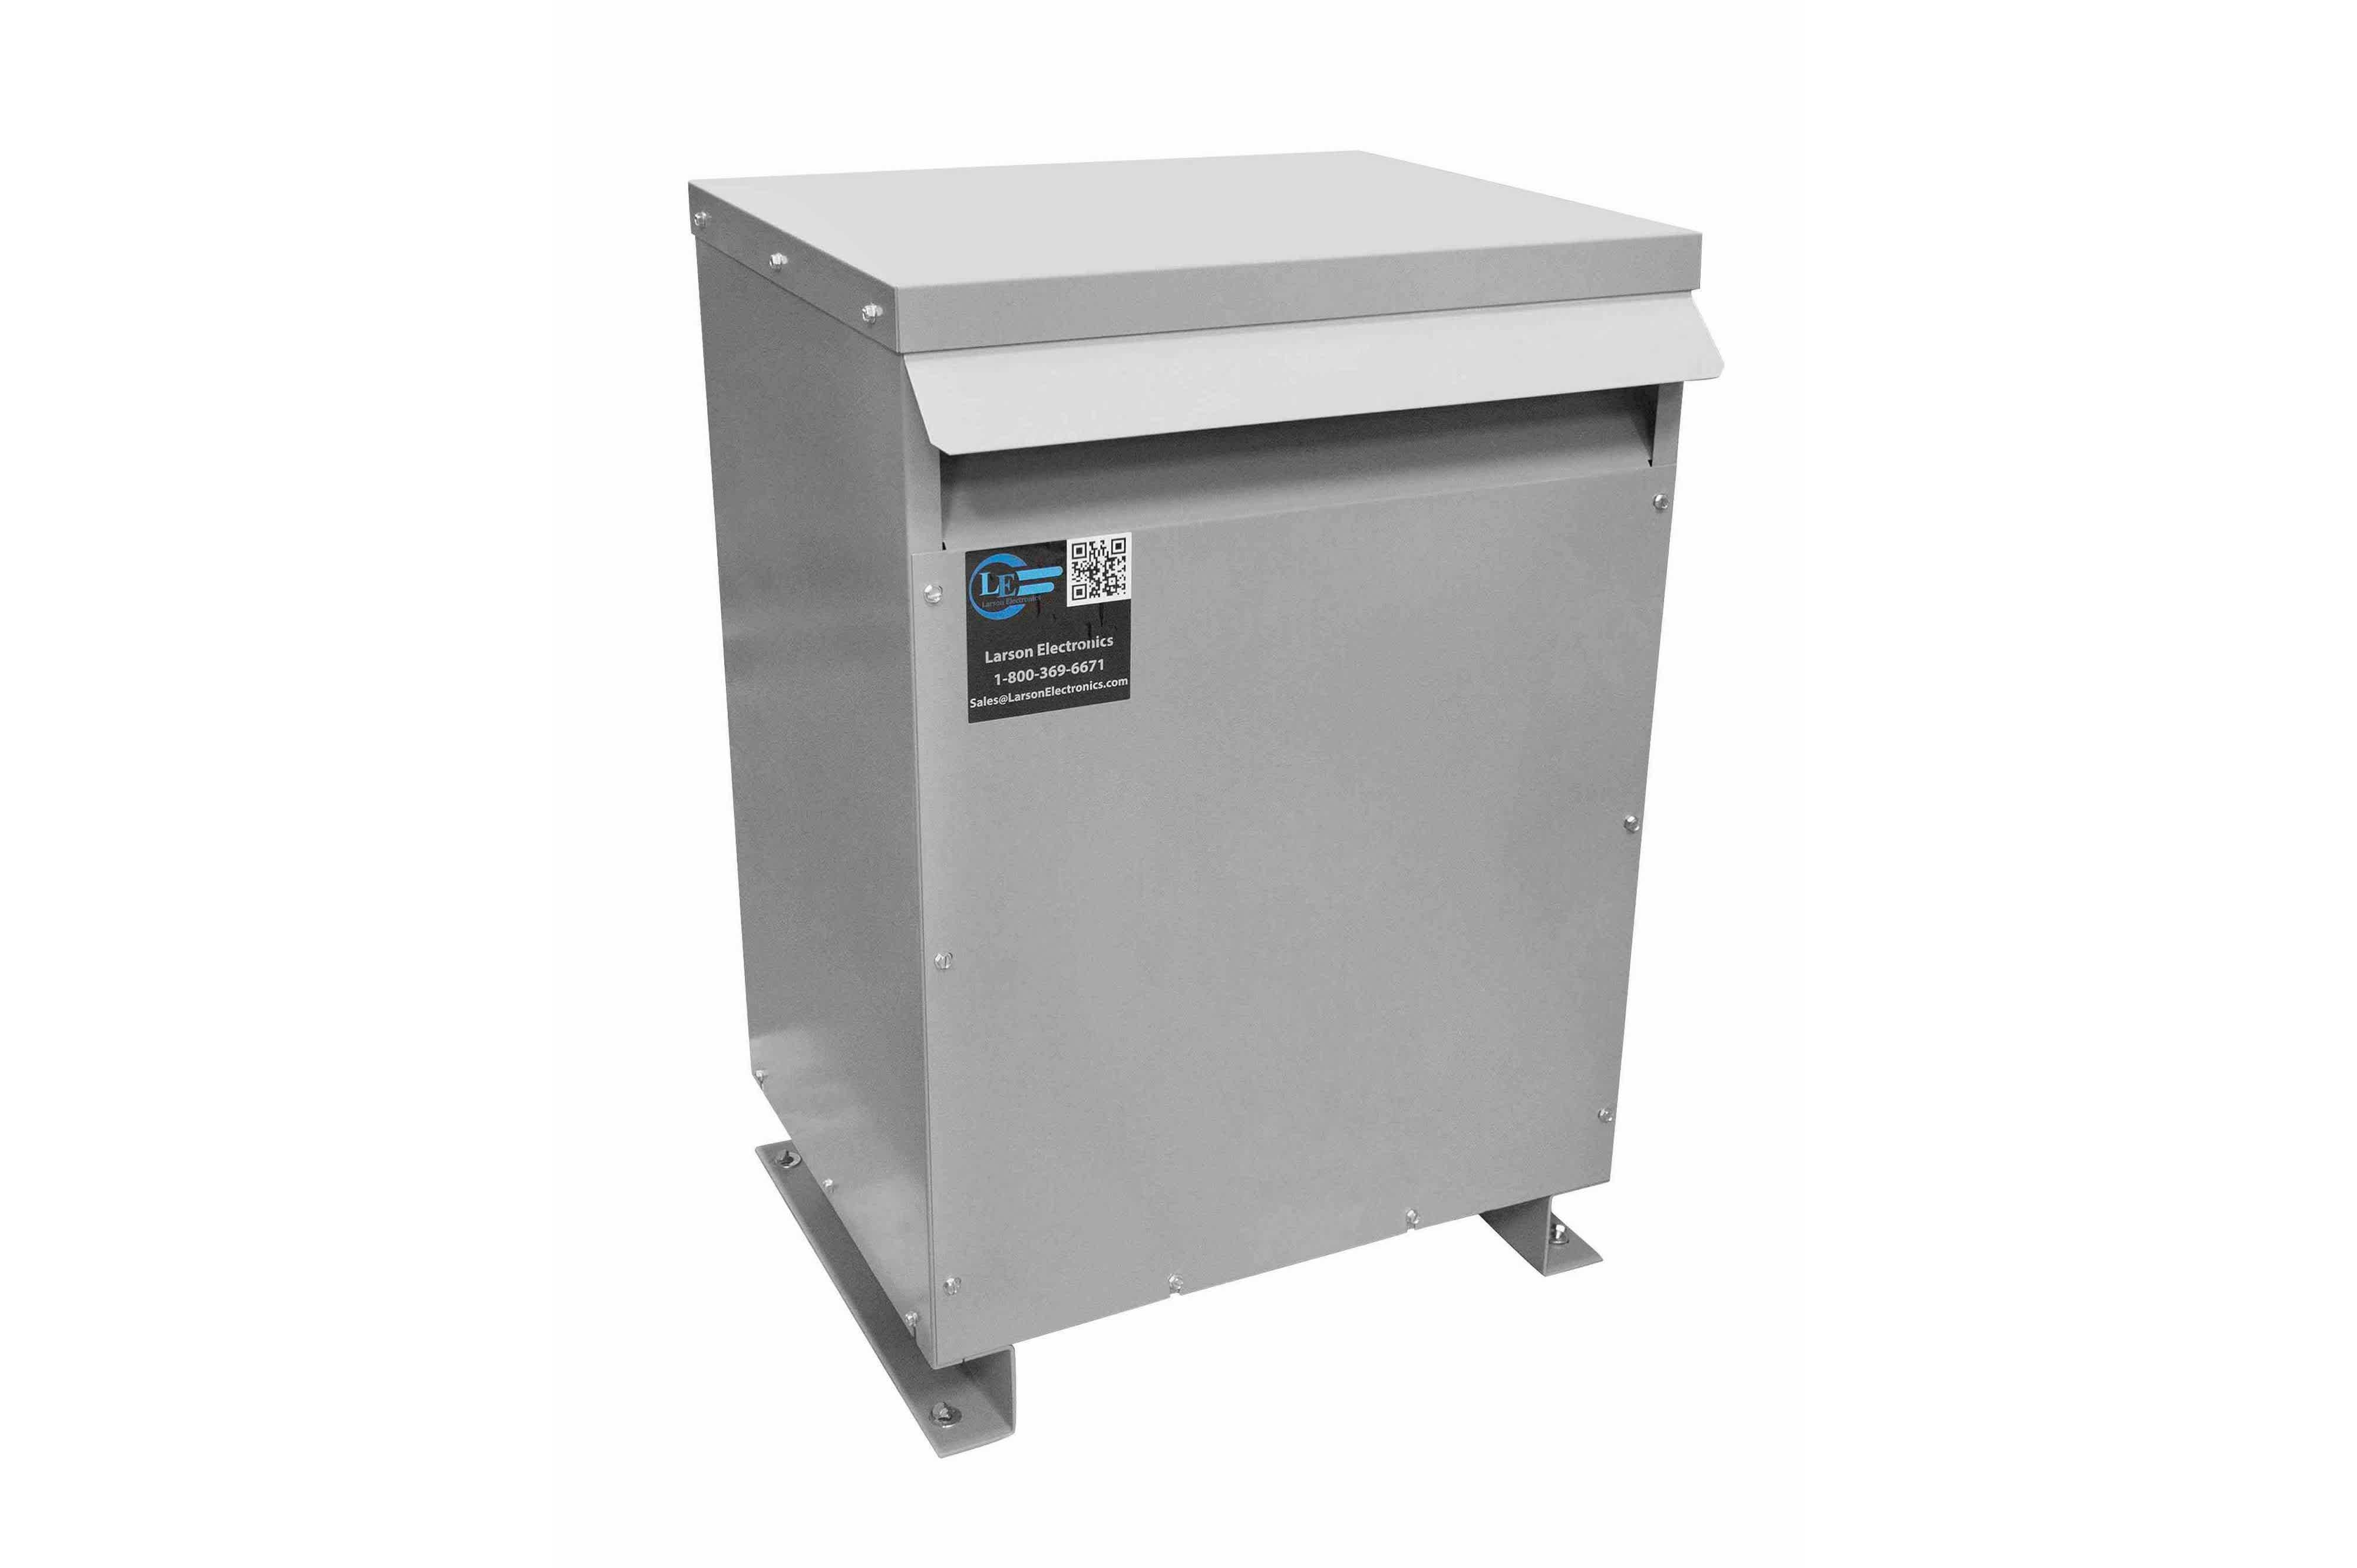 225 kVA 3PH Isolation Transformer, 460V Wye Primary, 600V Delta Secondary, N3R, Ventilated, 60 Hz